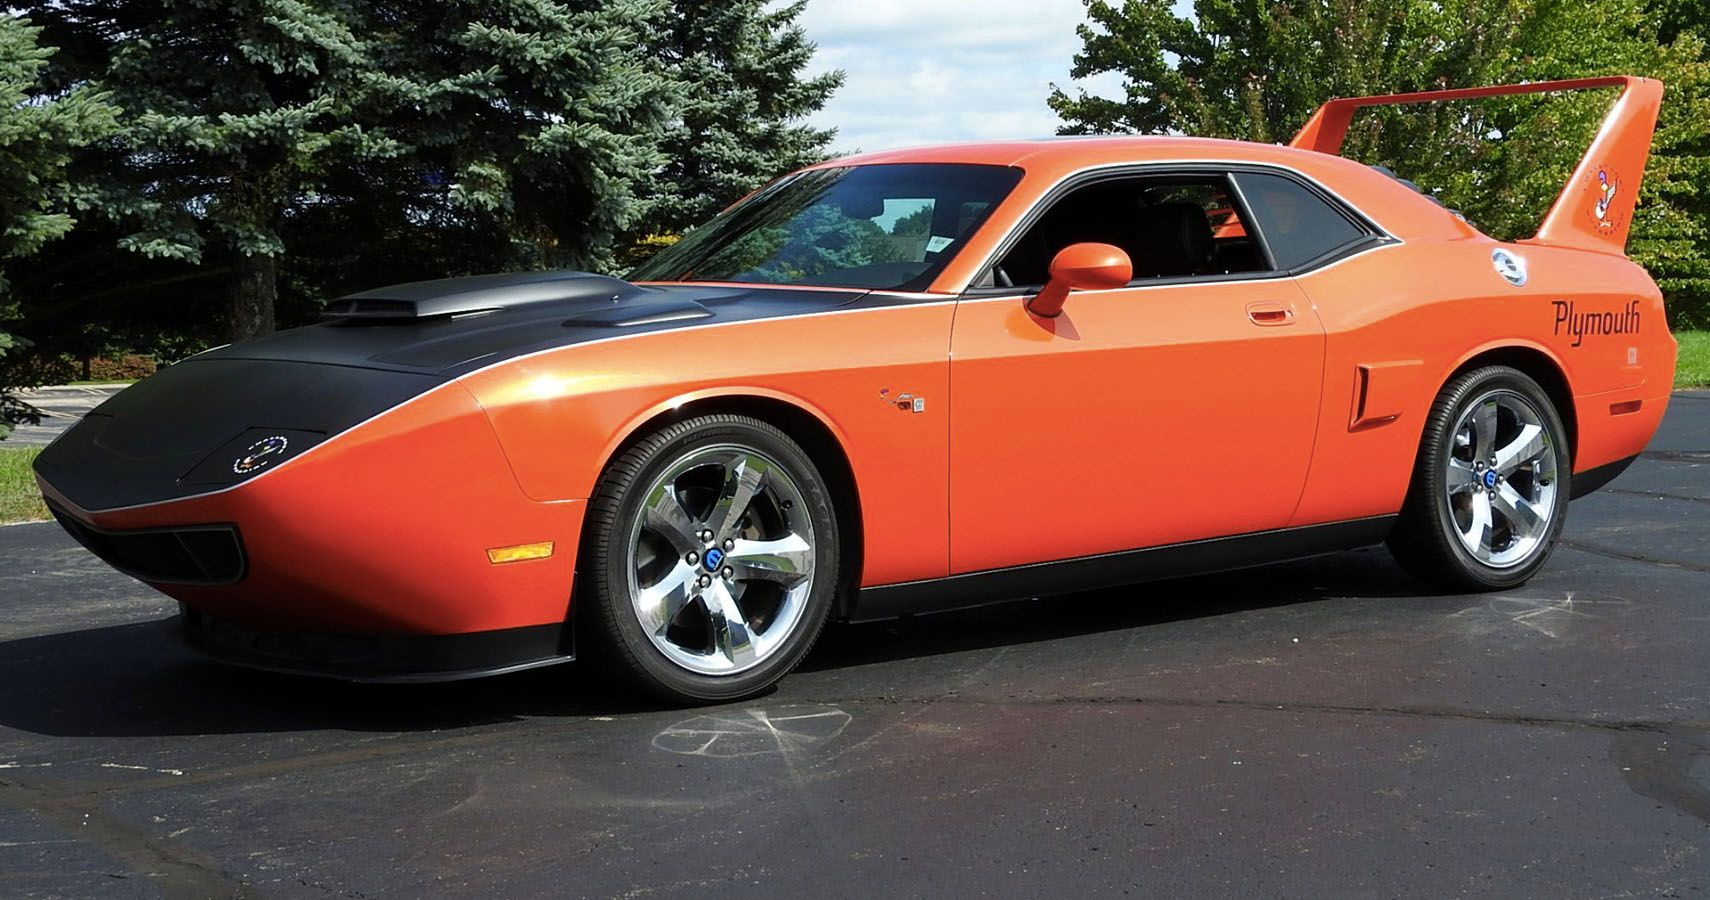 Dodge Challenger-Based Superbird Prototype Pops Up On BaT